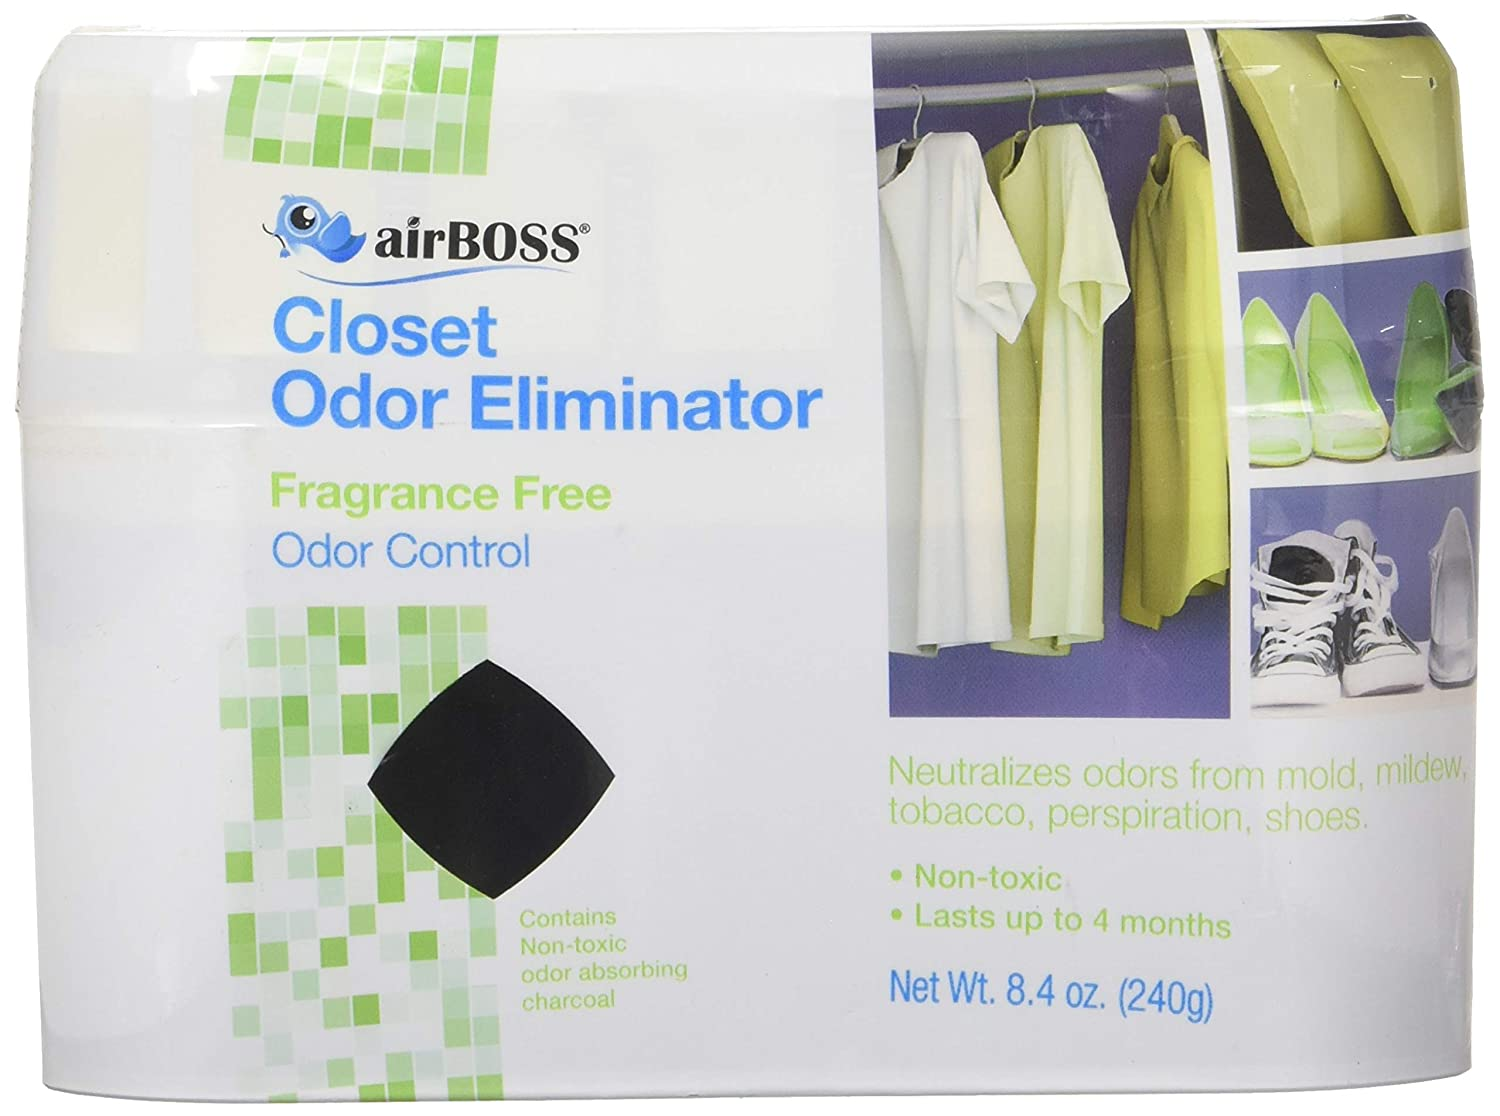 airBOSS Closet Odor Eliminator (6)